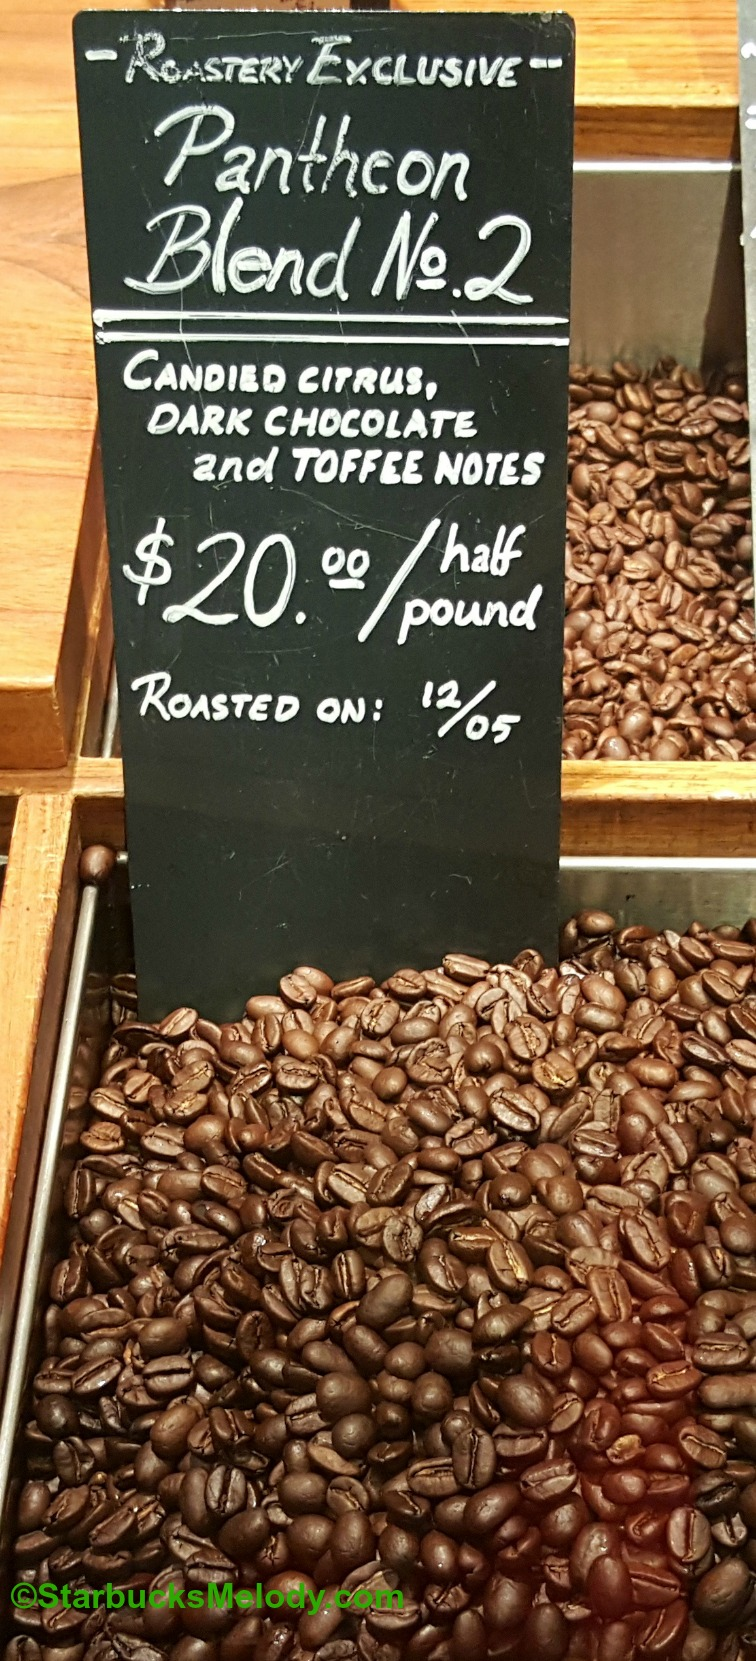 2 - 1 - 20151205_130957[1] Pantheon Blend whole bean at the Roastery.jpg